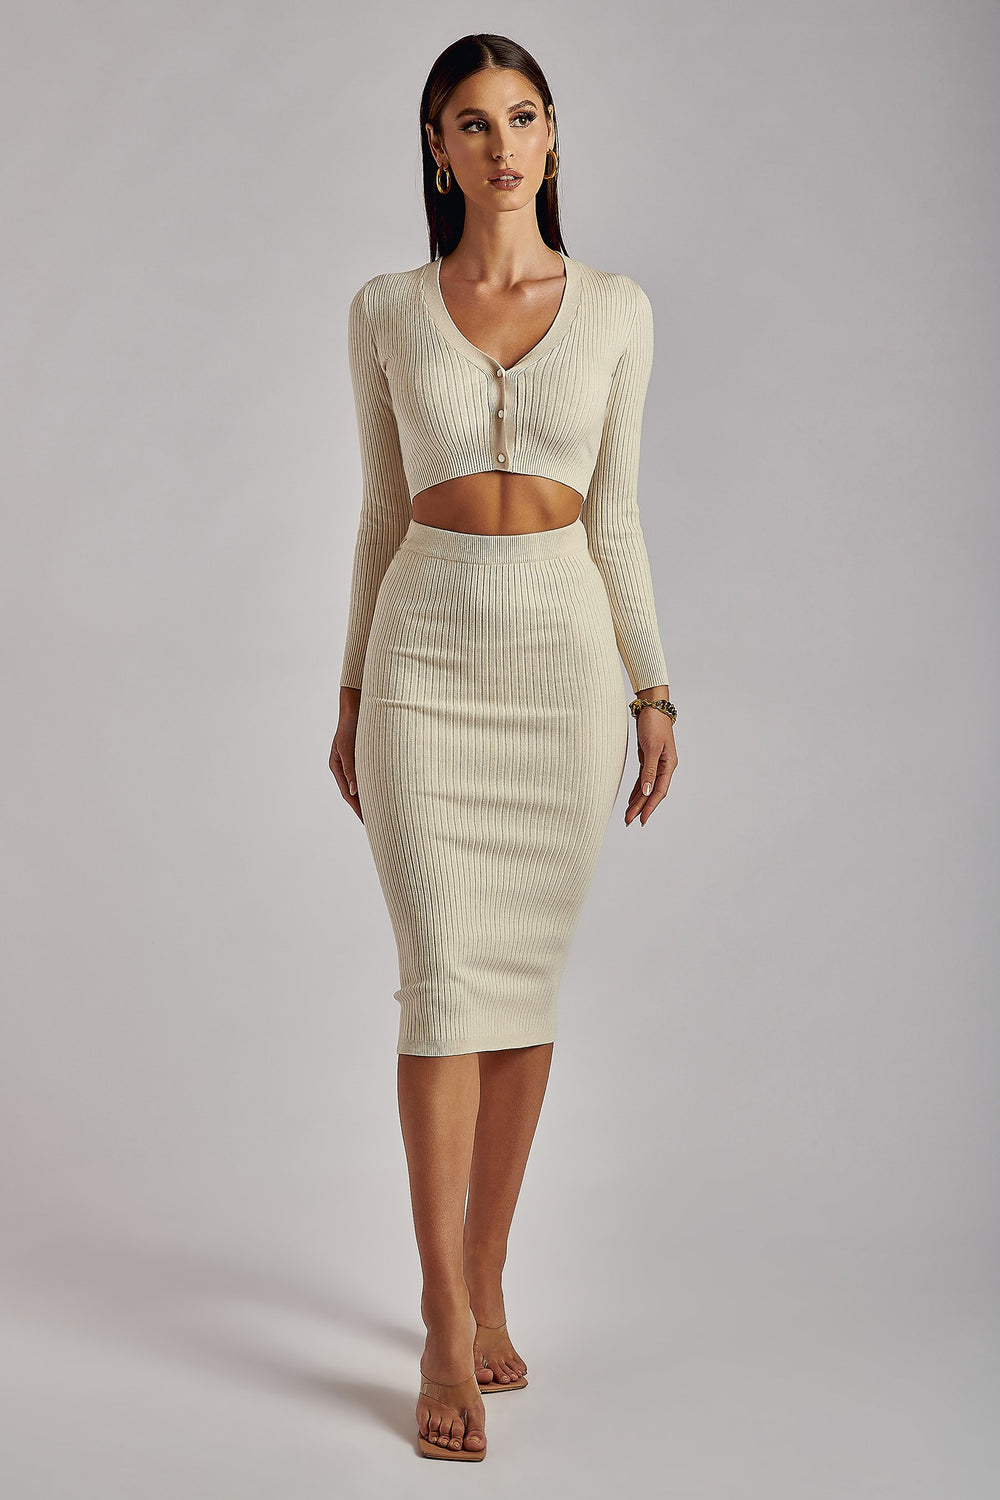 Wren Ribbed Midaxi Skirt - Cream